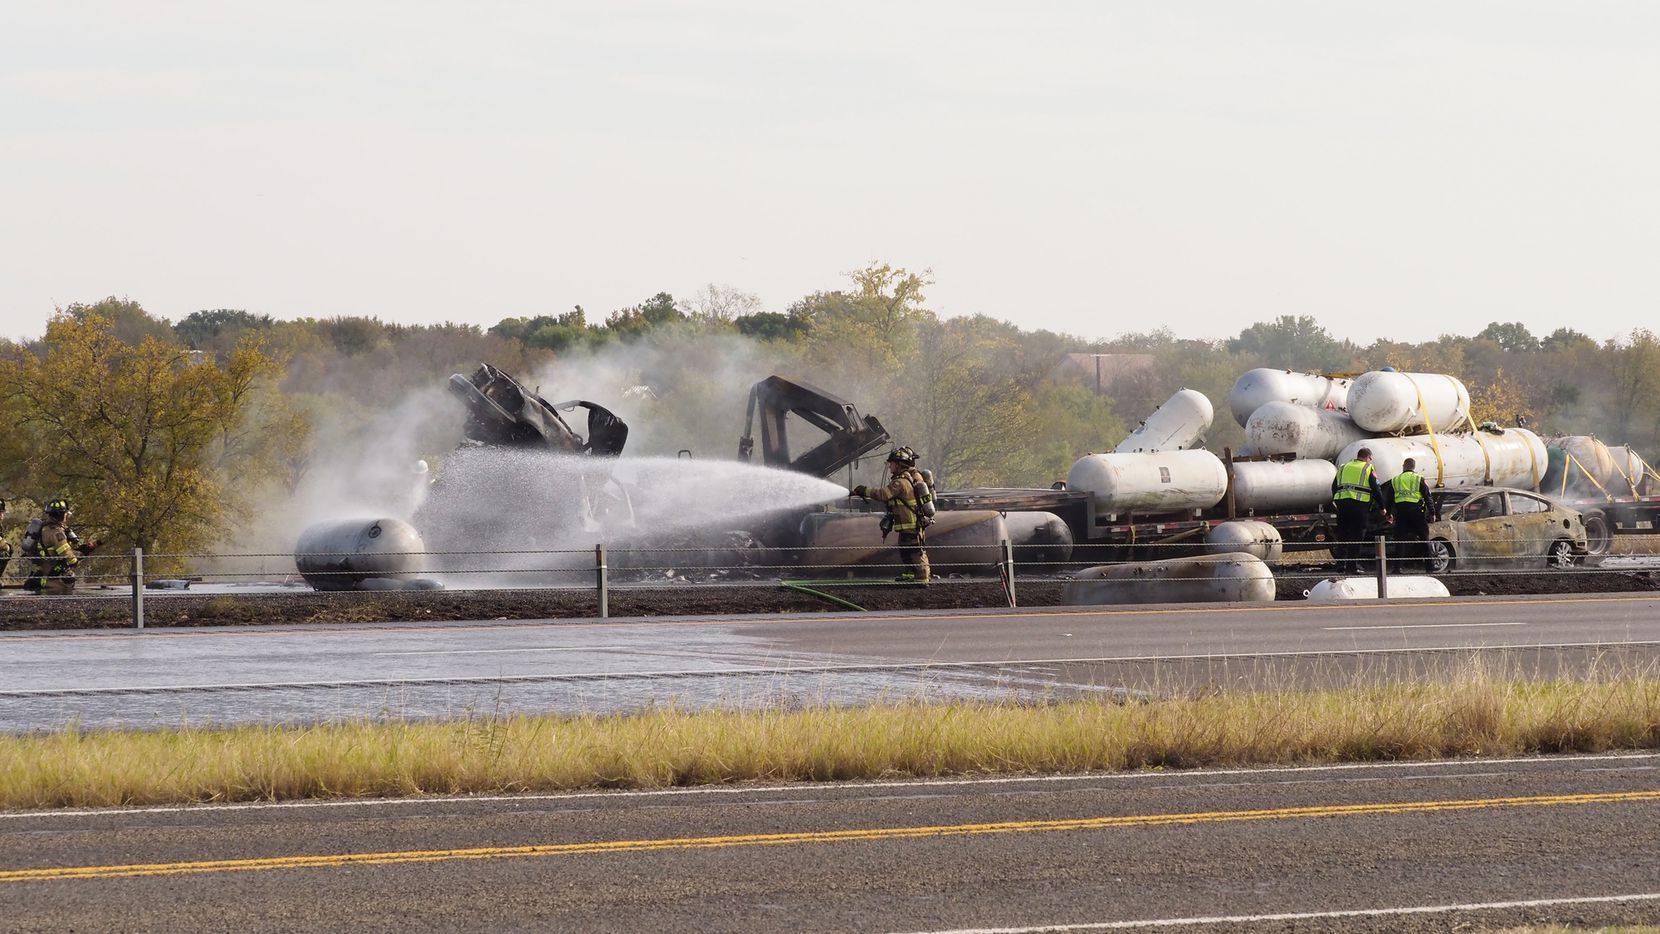 Firefighters contain a fire from a vehicle accident which caused at least three people to be killed Friday afternoon in an explosion involving two semis and three passenger vehicles in the 2300 block of Interstate 35W, Denton police said, Friday, November 8, 2019, in Denton, Texas.